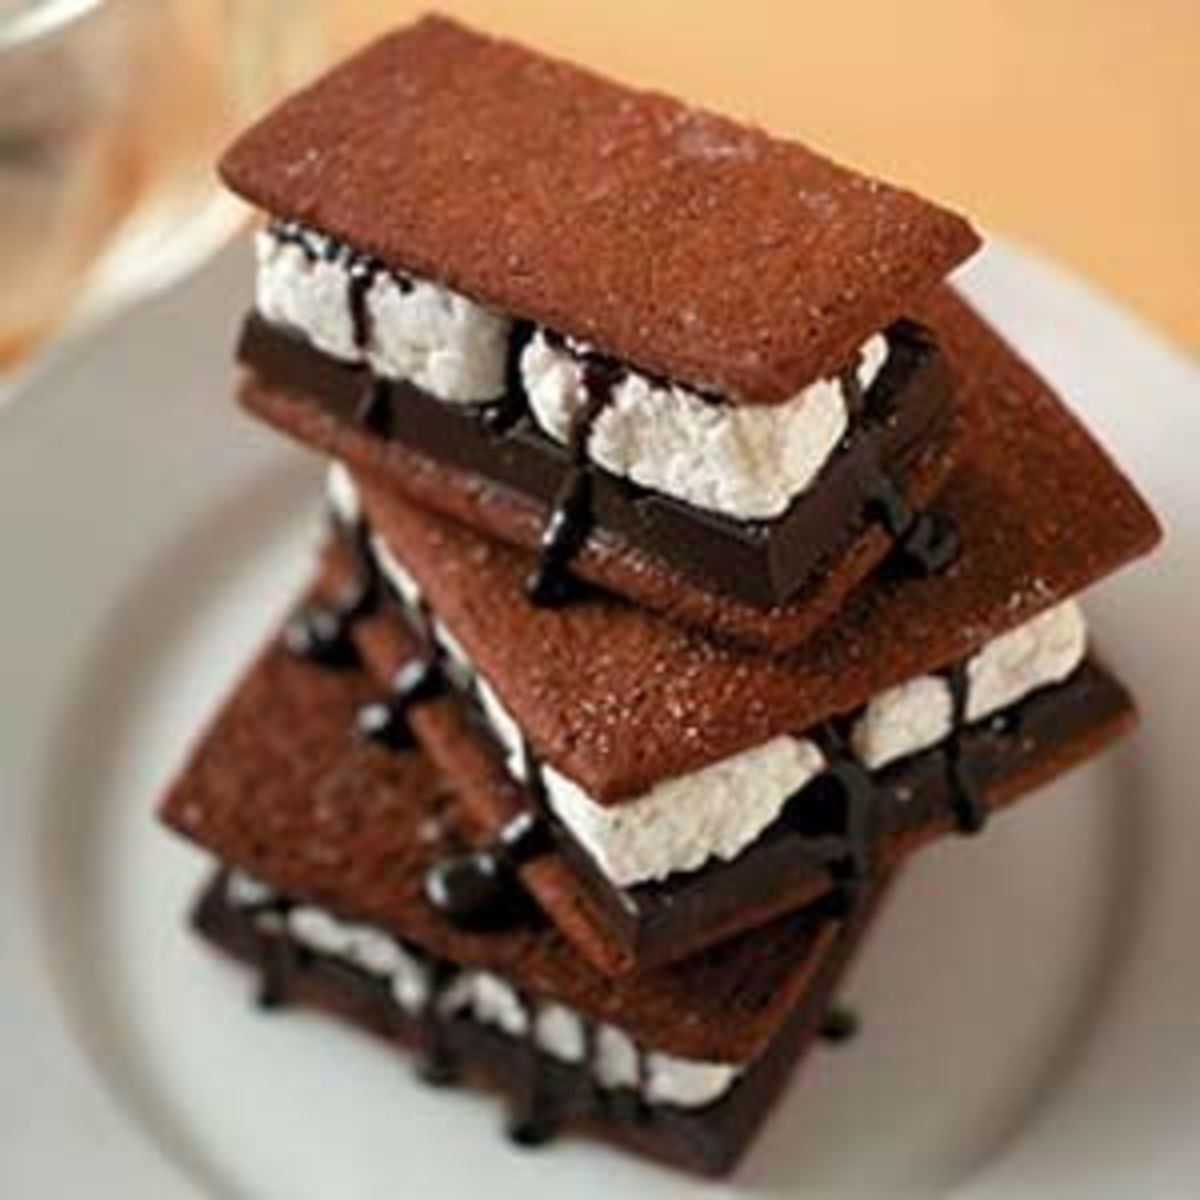 Dress up your S'mores by drizzling melted chocolate over the marshmallow and chocolate bar.